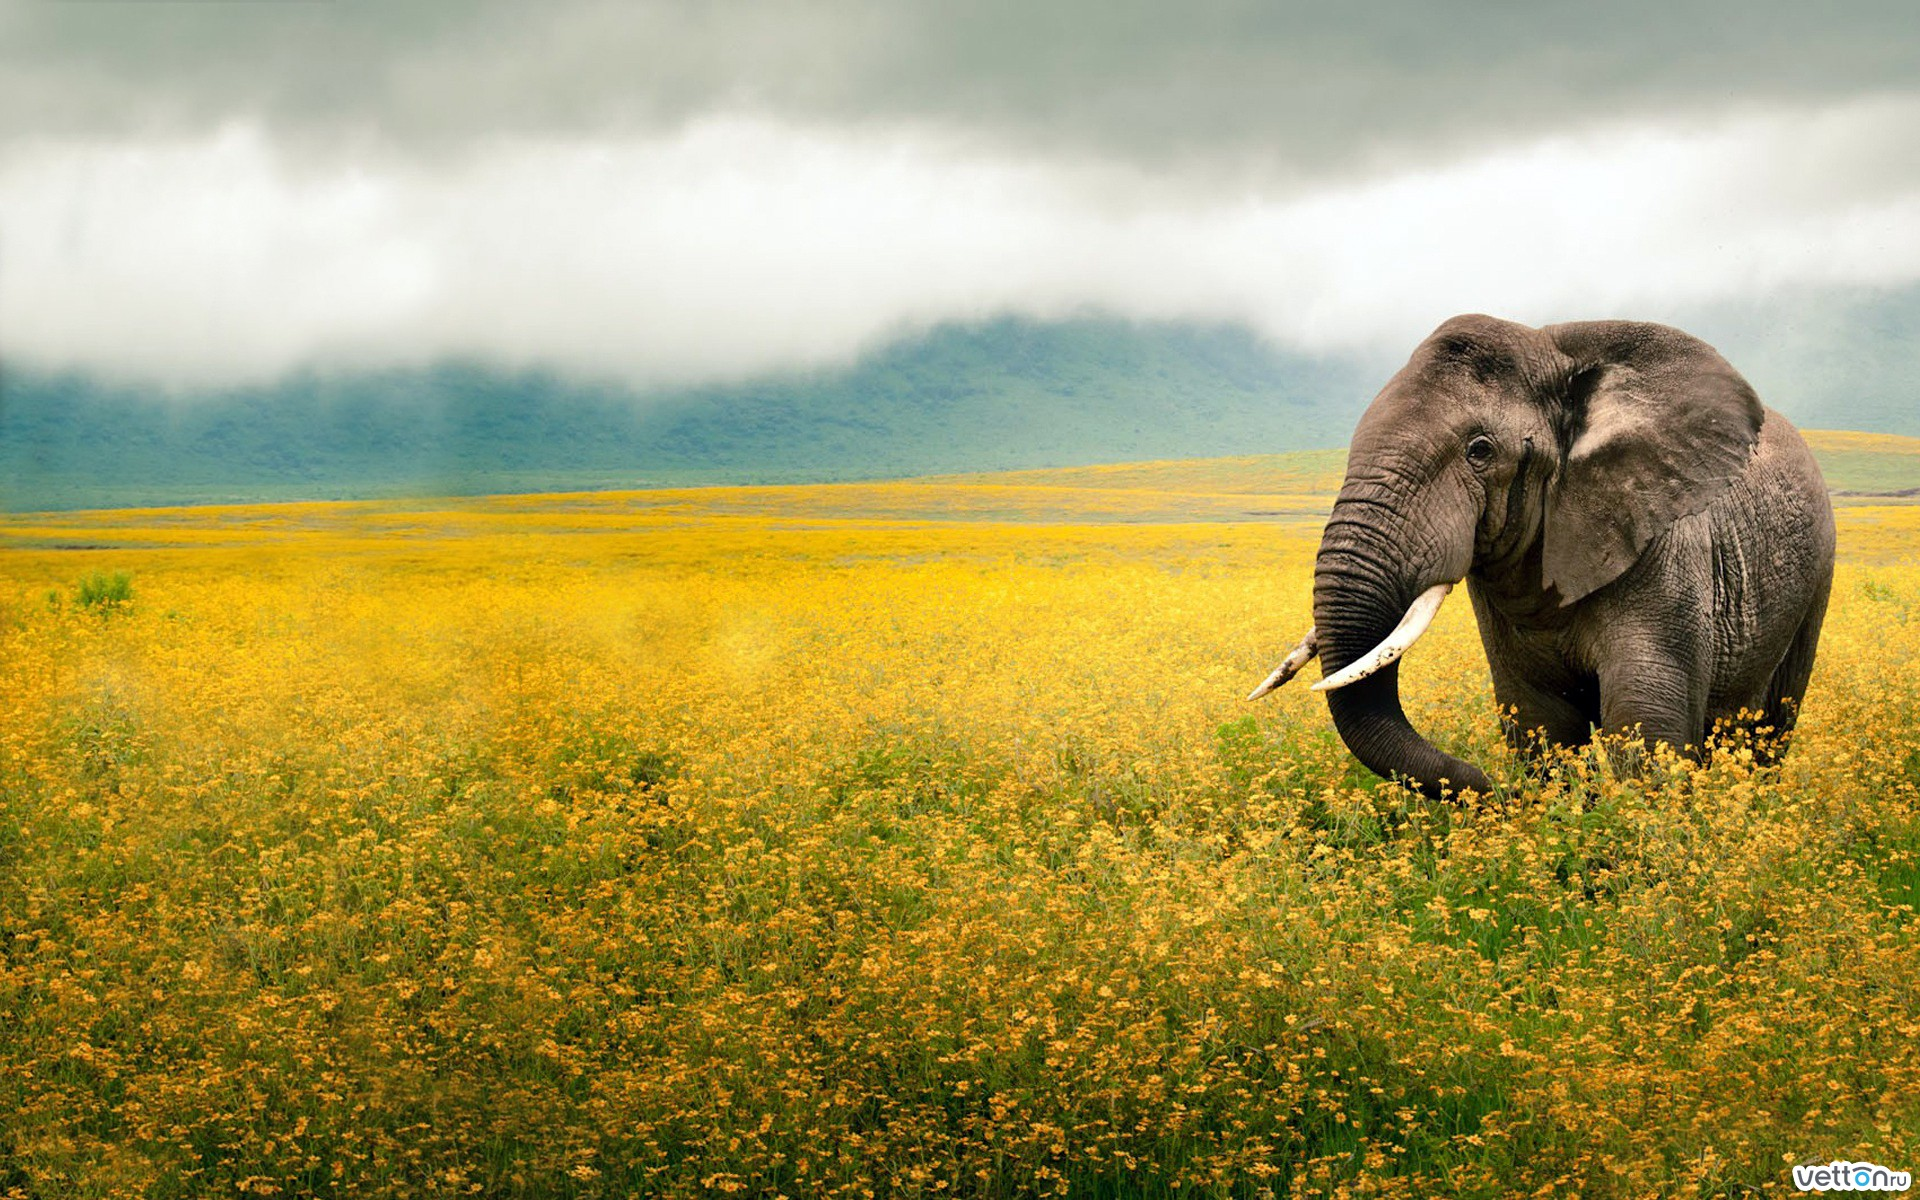 sky, field, flowers, yellow elephant